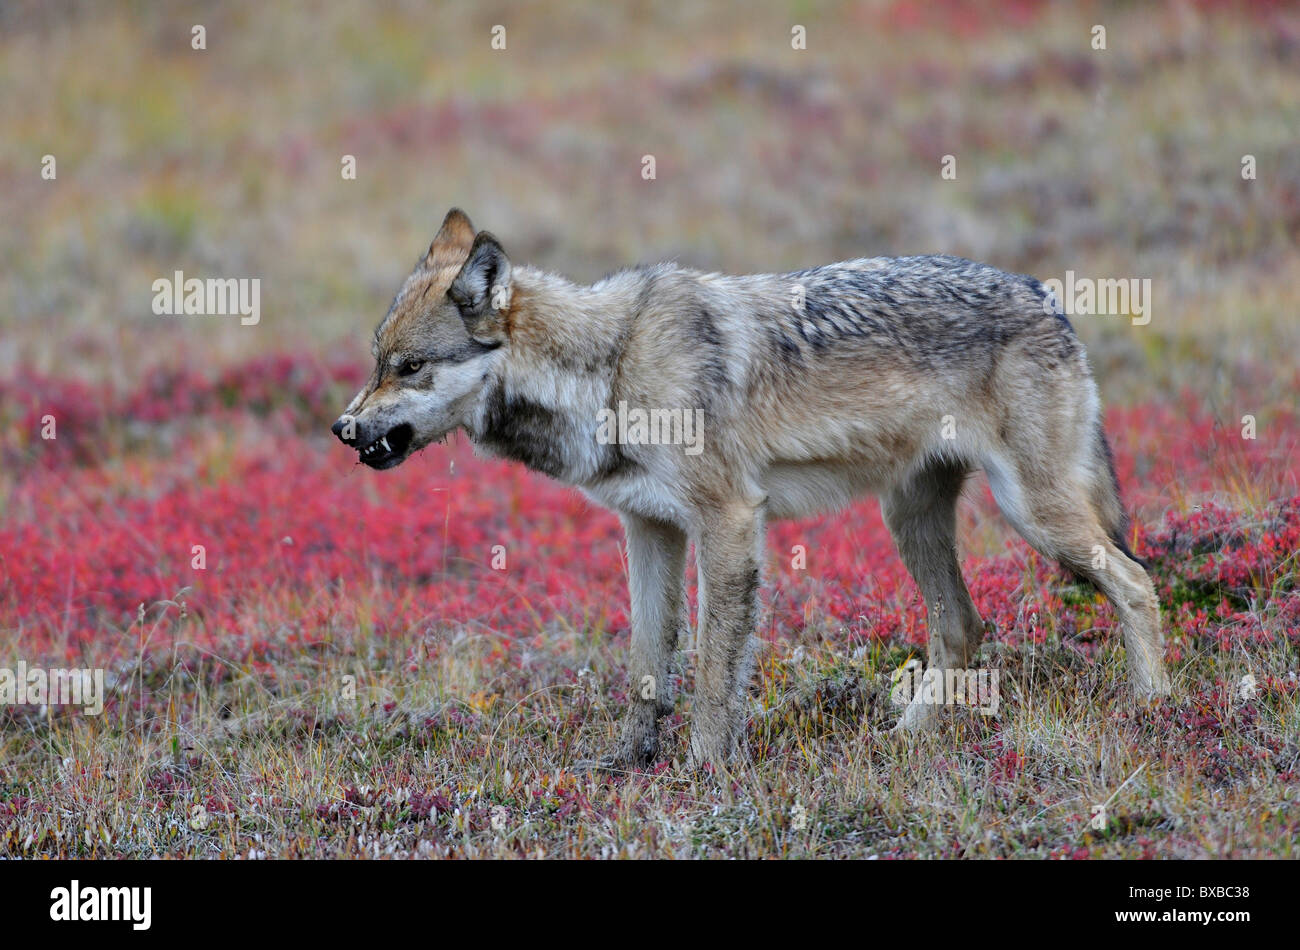 Wolf (Canis lupus) crossing the tundra, looking for food, threatening gesture, Denali National Park, Alaska - Stock Image